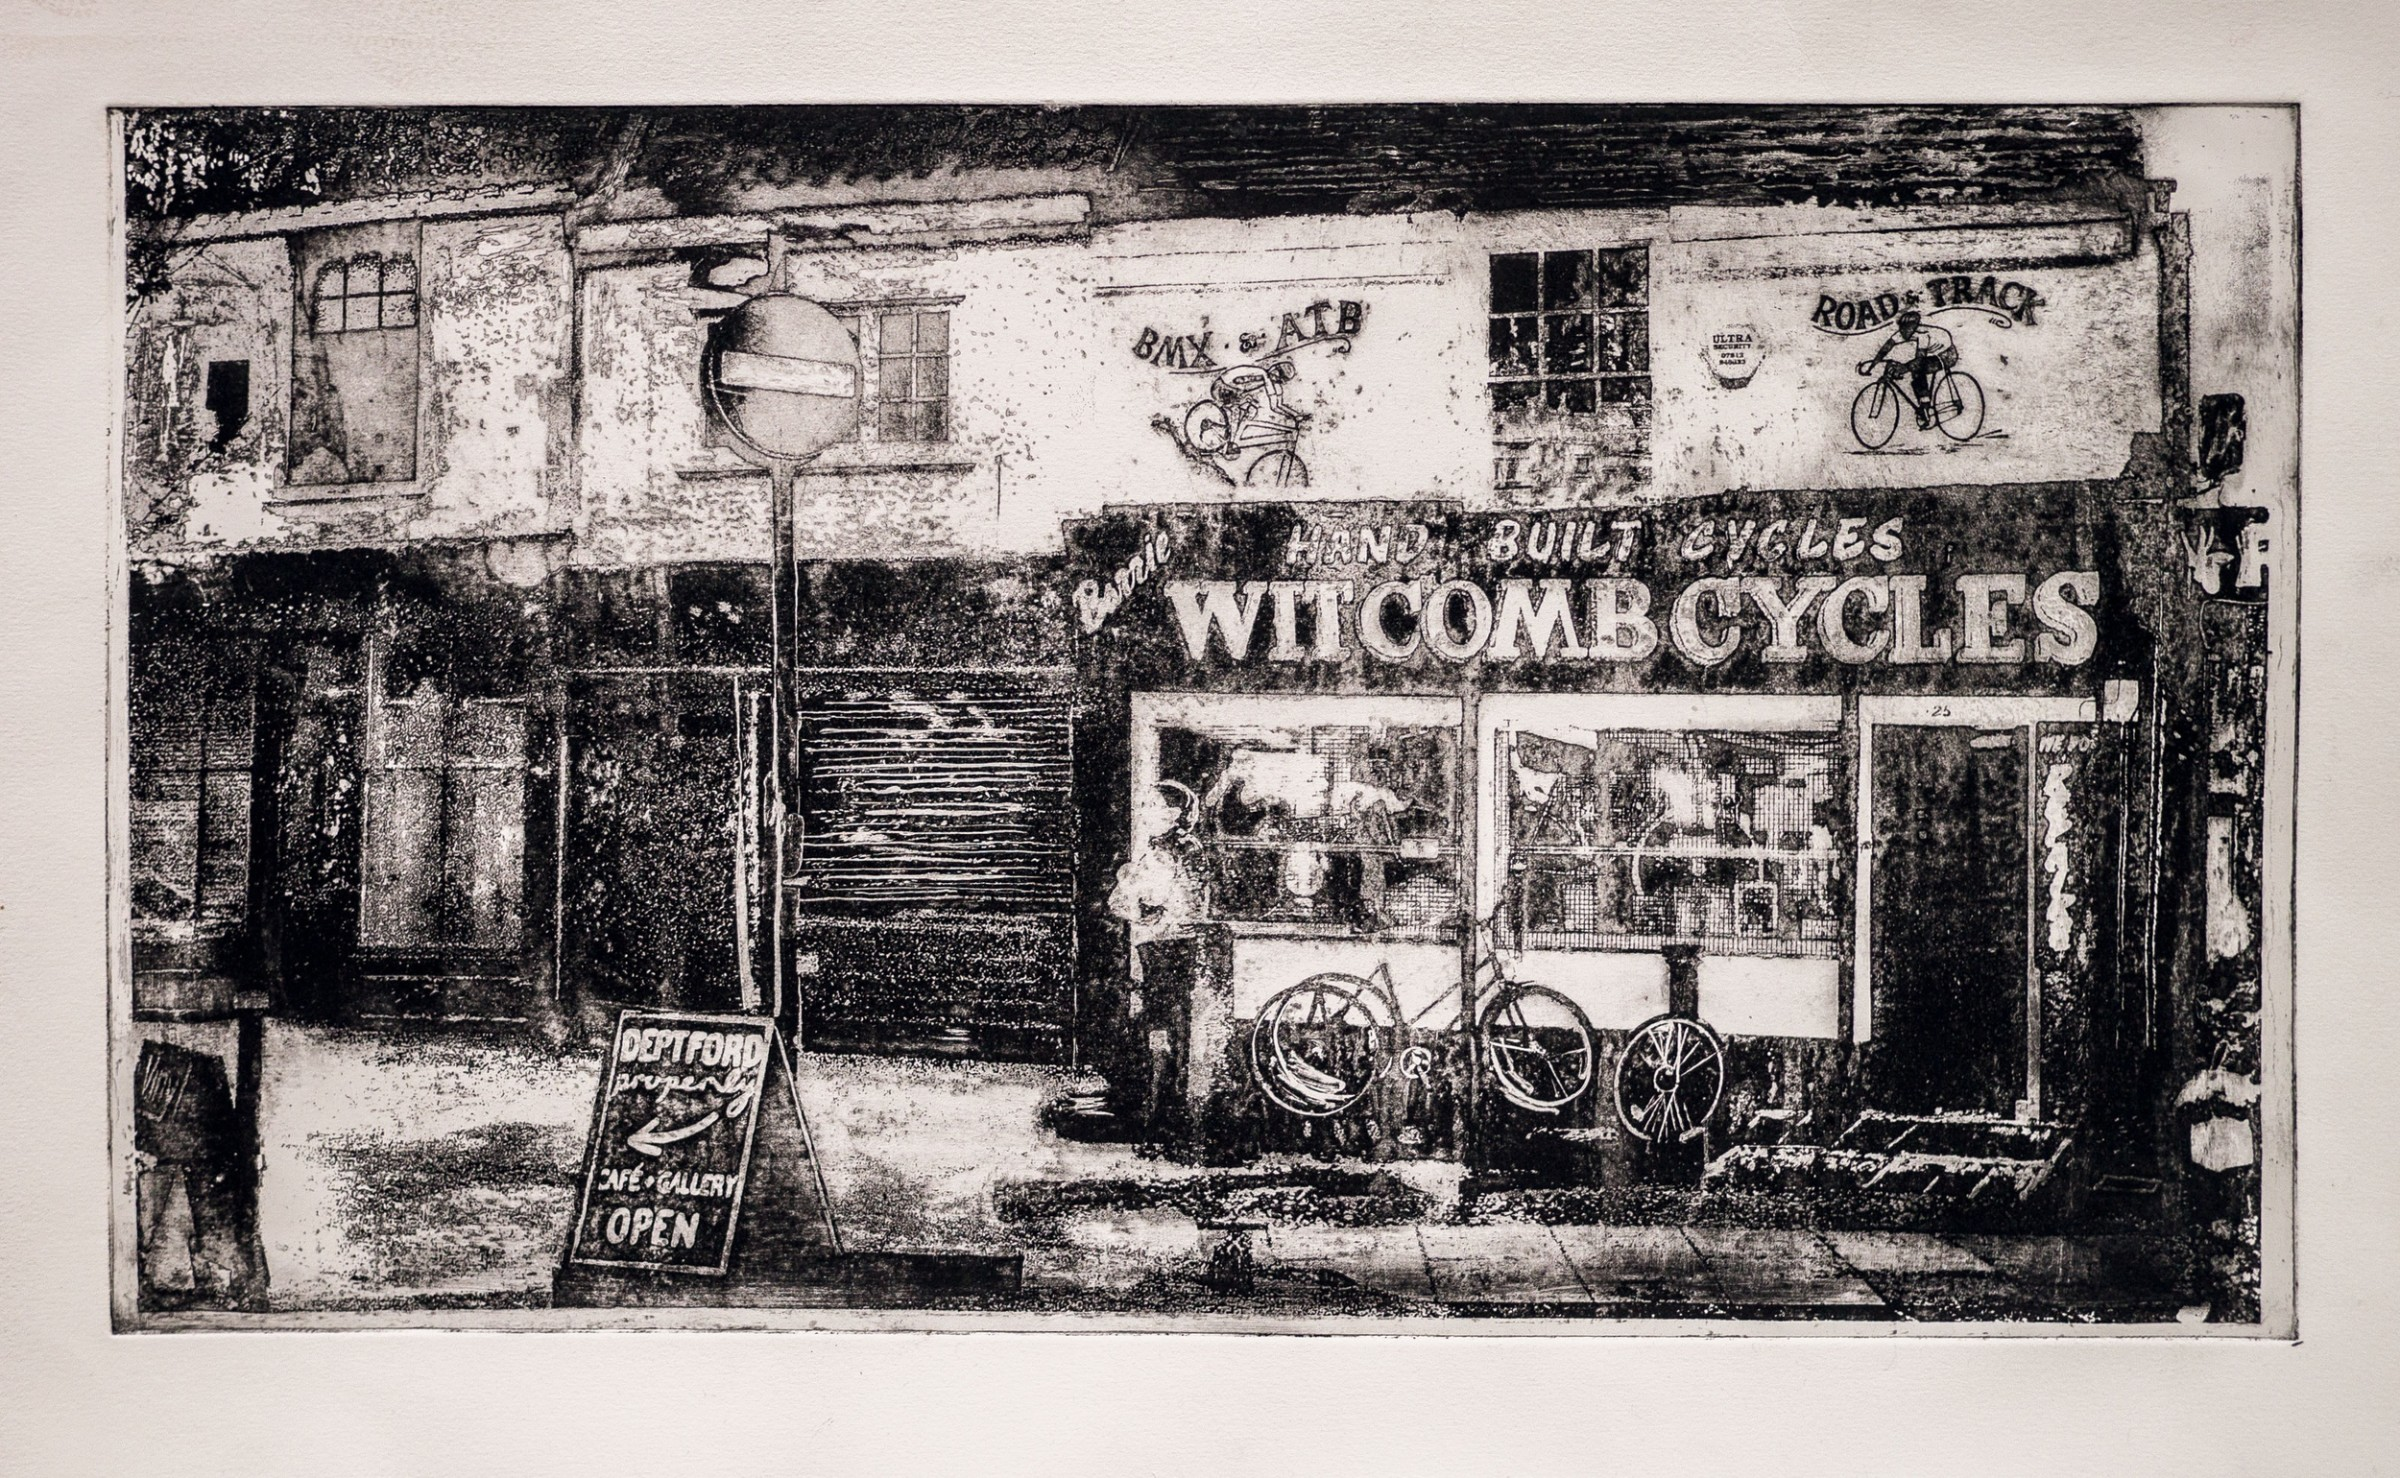 """<span class=""""link fancybox-details-link""""><a href=""""/exhibitions/17/works/image_standalone760/"""">View Detail Page</a></span><p><strong>Rachel Mooney</strong></p><p>Witcomb and Gone</p><p>etching, ed of 20</p><p>66 x 44cm</p><p>£360 framed</p><p>£290 unframed</p>"""